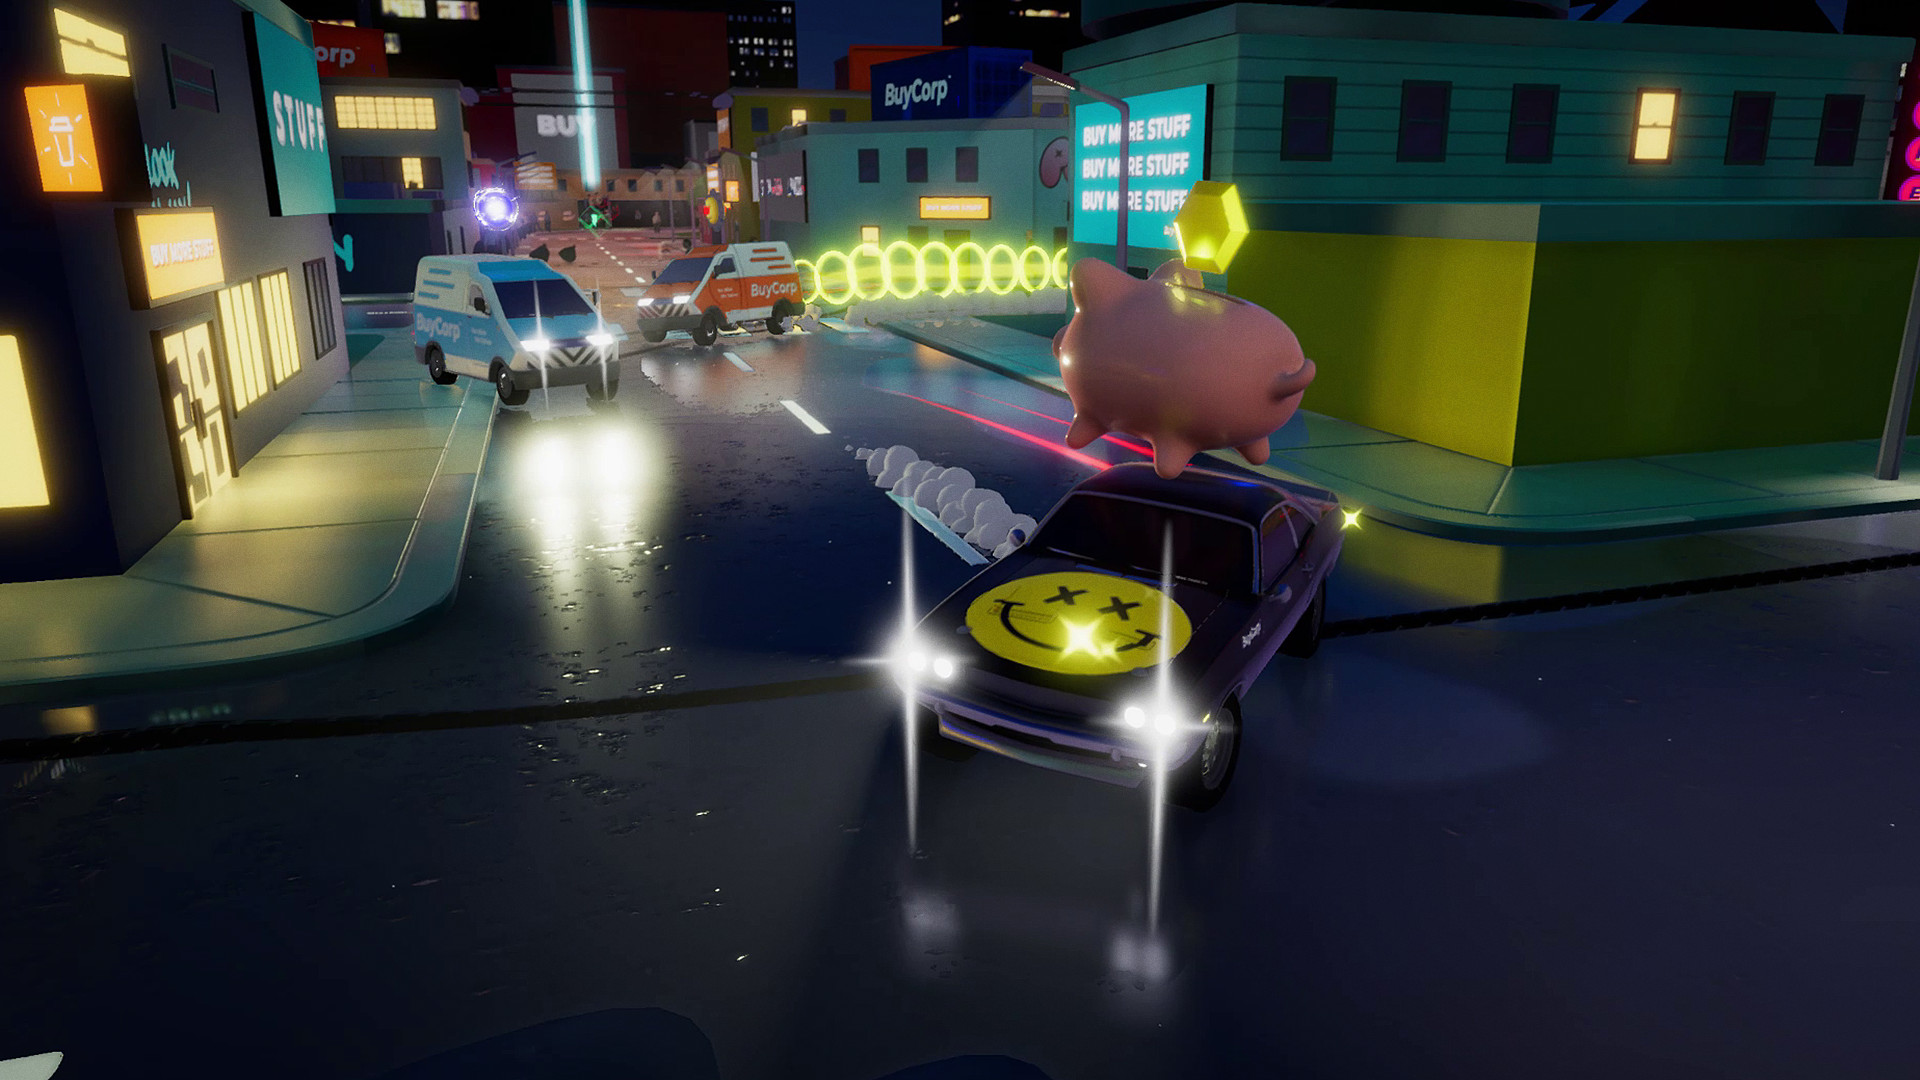 Drive Buy Is Twisted Metal Meets Crazy Taxi